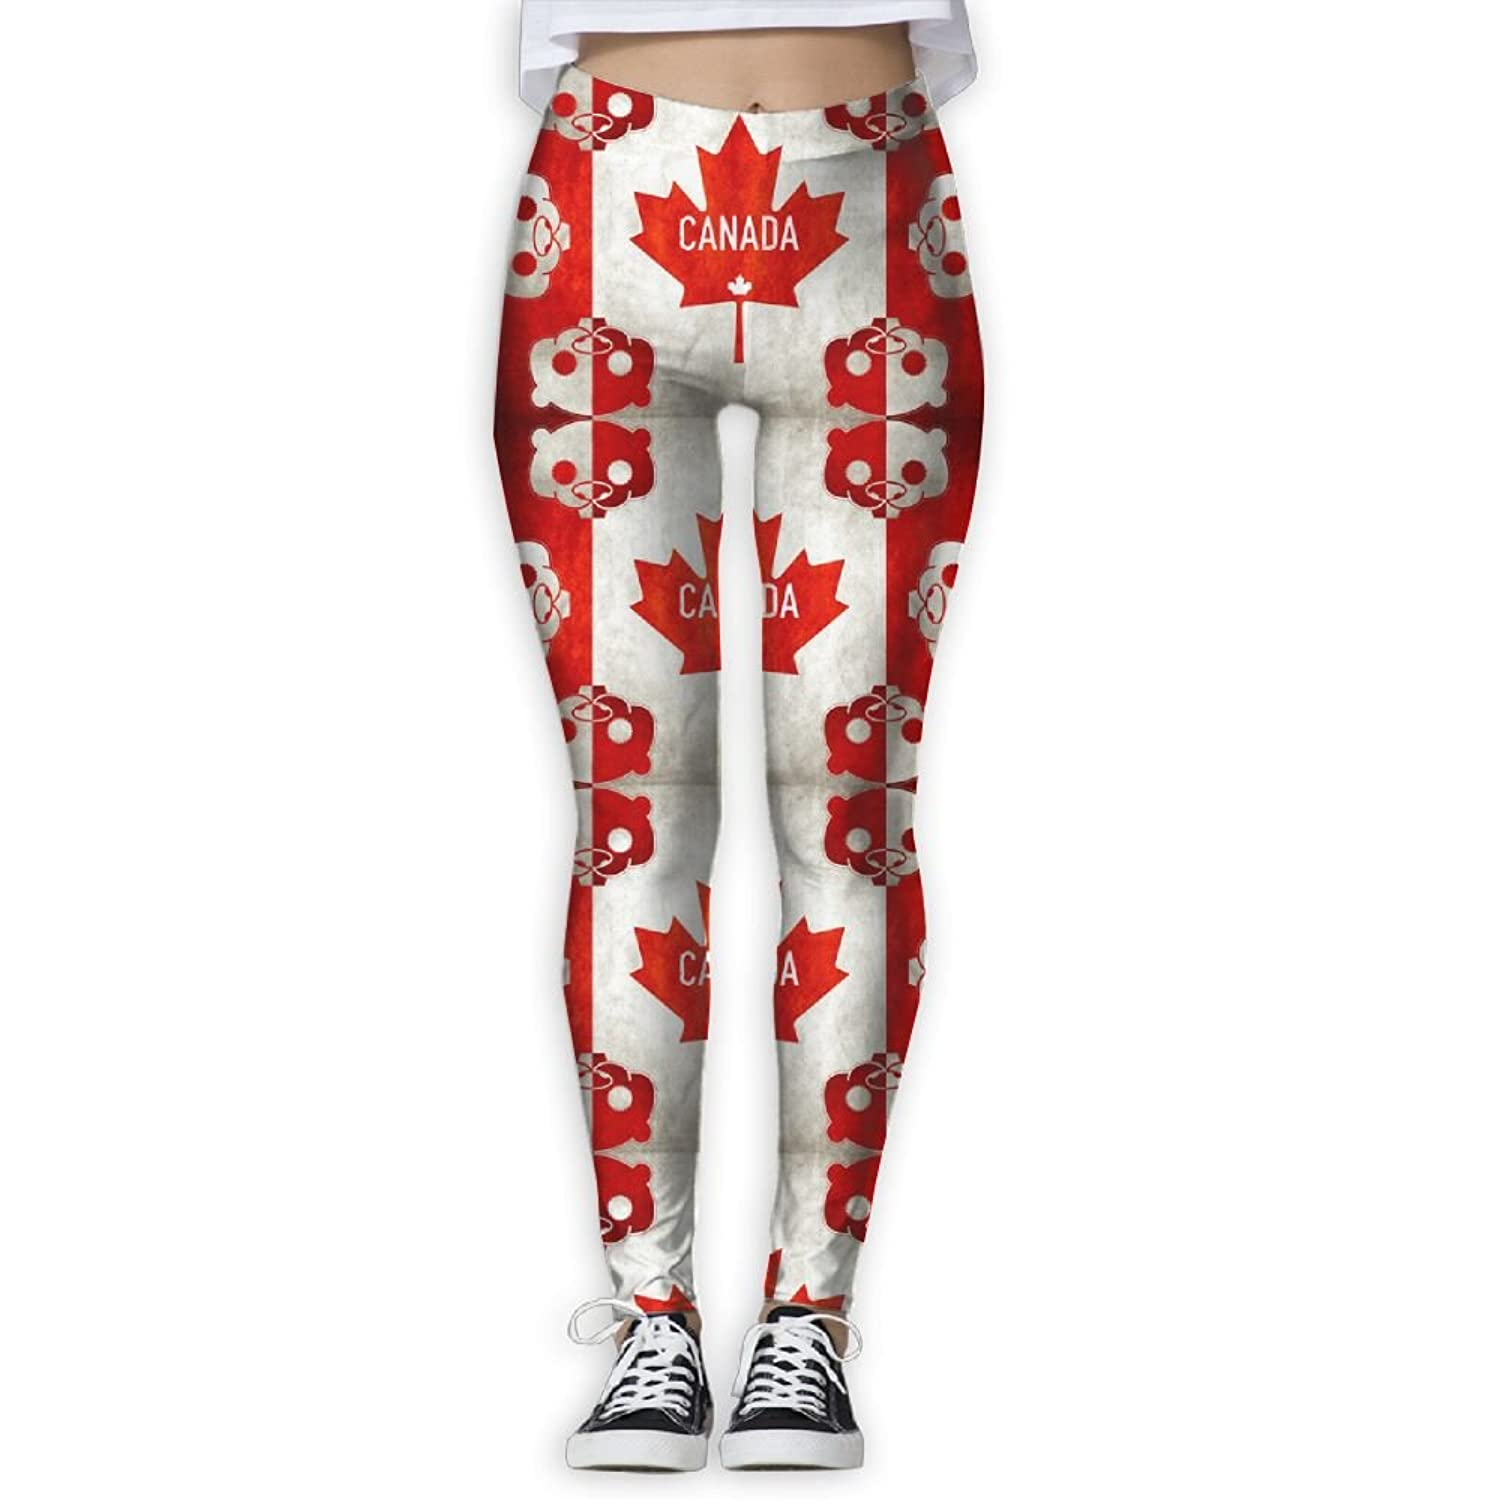 Jhwj Ku Womens Yoga Pants Moose And Canadian Flag Tummy Control Workout Leggings Pants Activewear Women Clothing Accessories